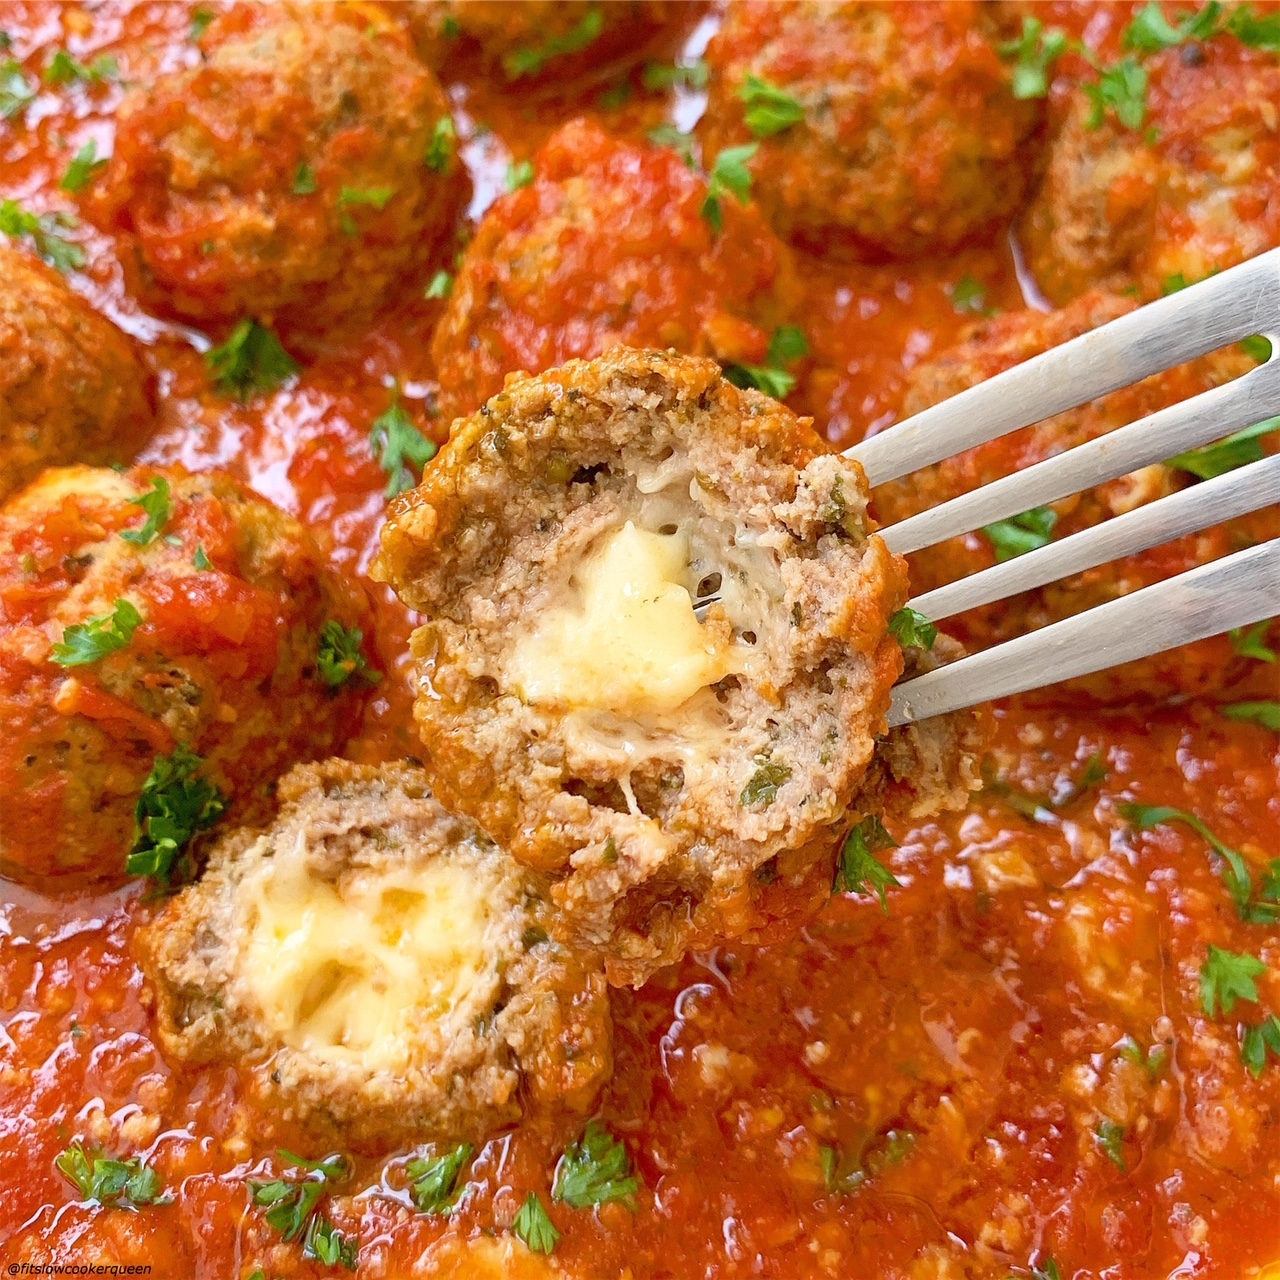 pic of an meatball with mozzarella cheese coming out of it from slow cooker instant pot mozzarella stuffed meatballs